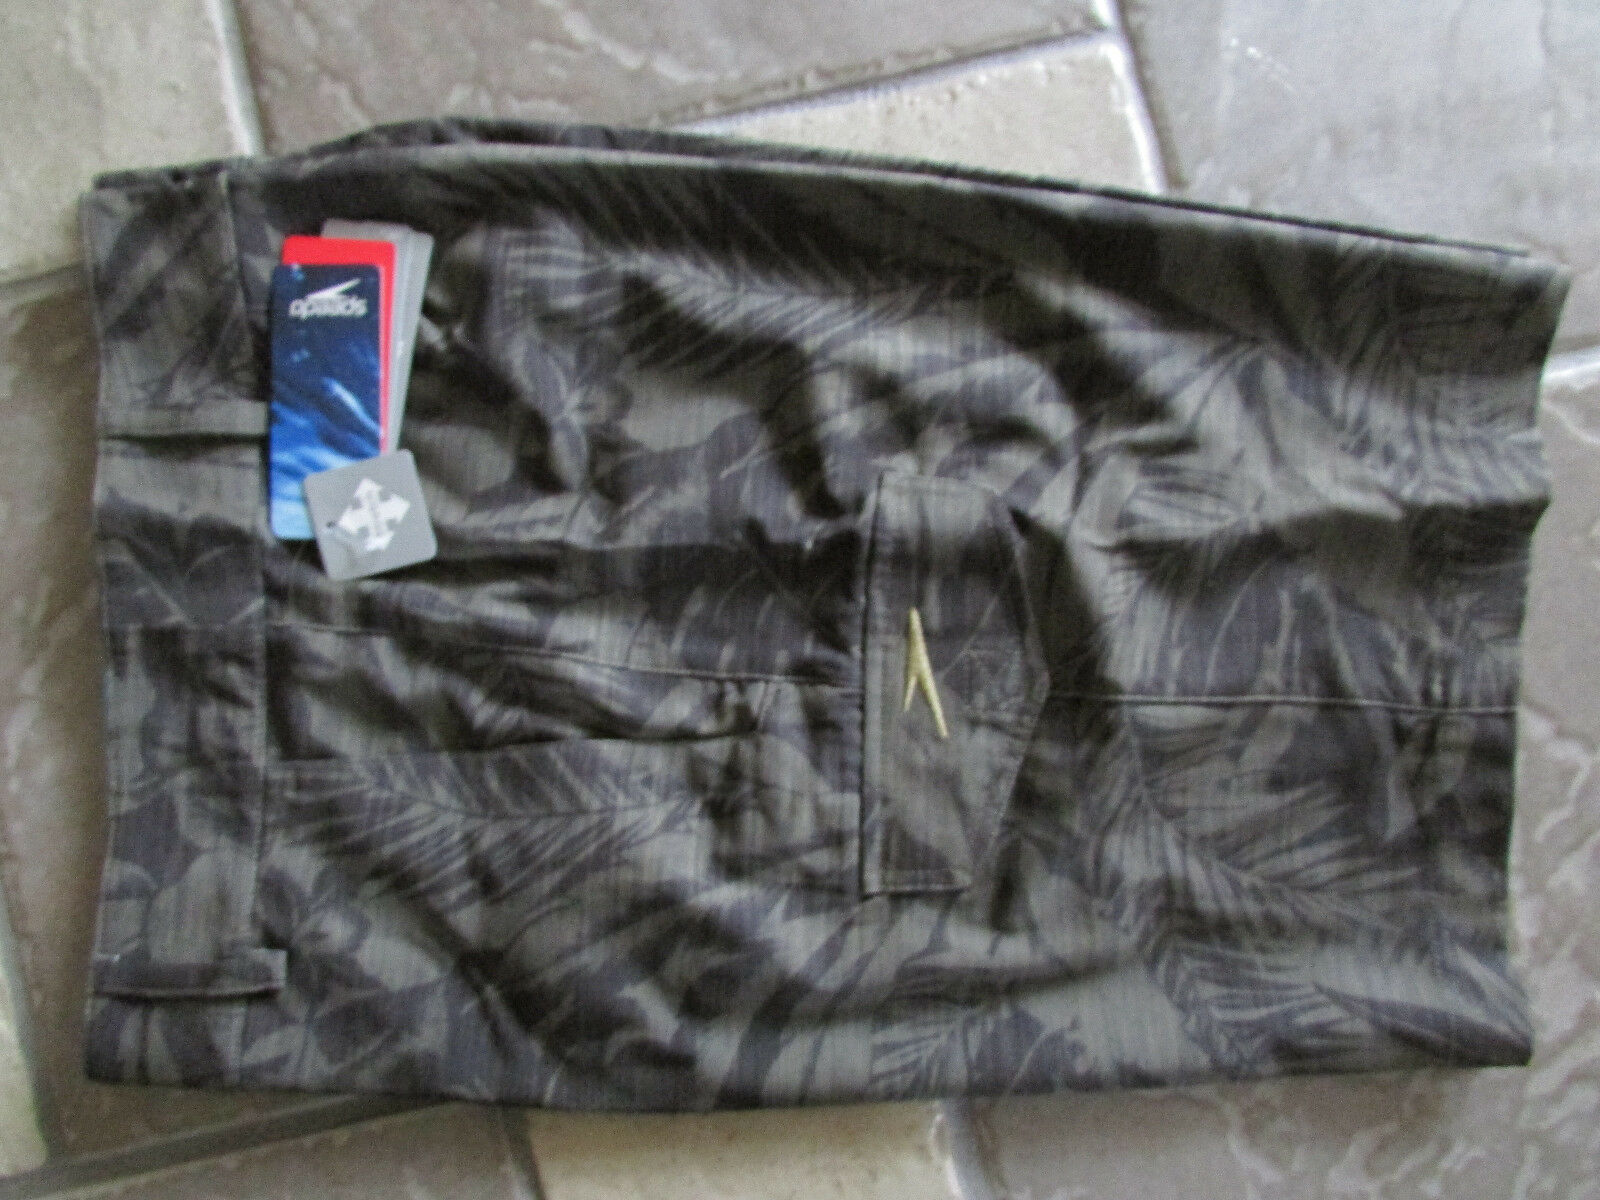 NEW SPEEDO HYBRID SWIM SUIT WATER SHORTS TRUNKS MENS 36 BROWN FLORAL  FREE SHIP